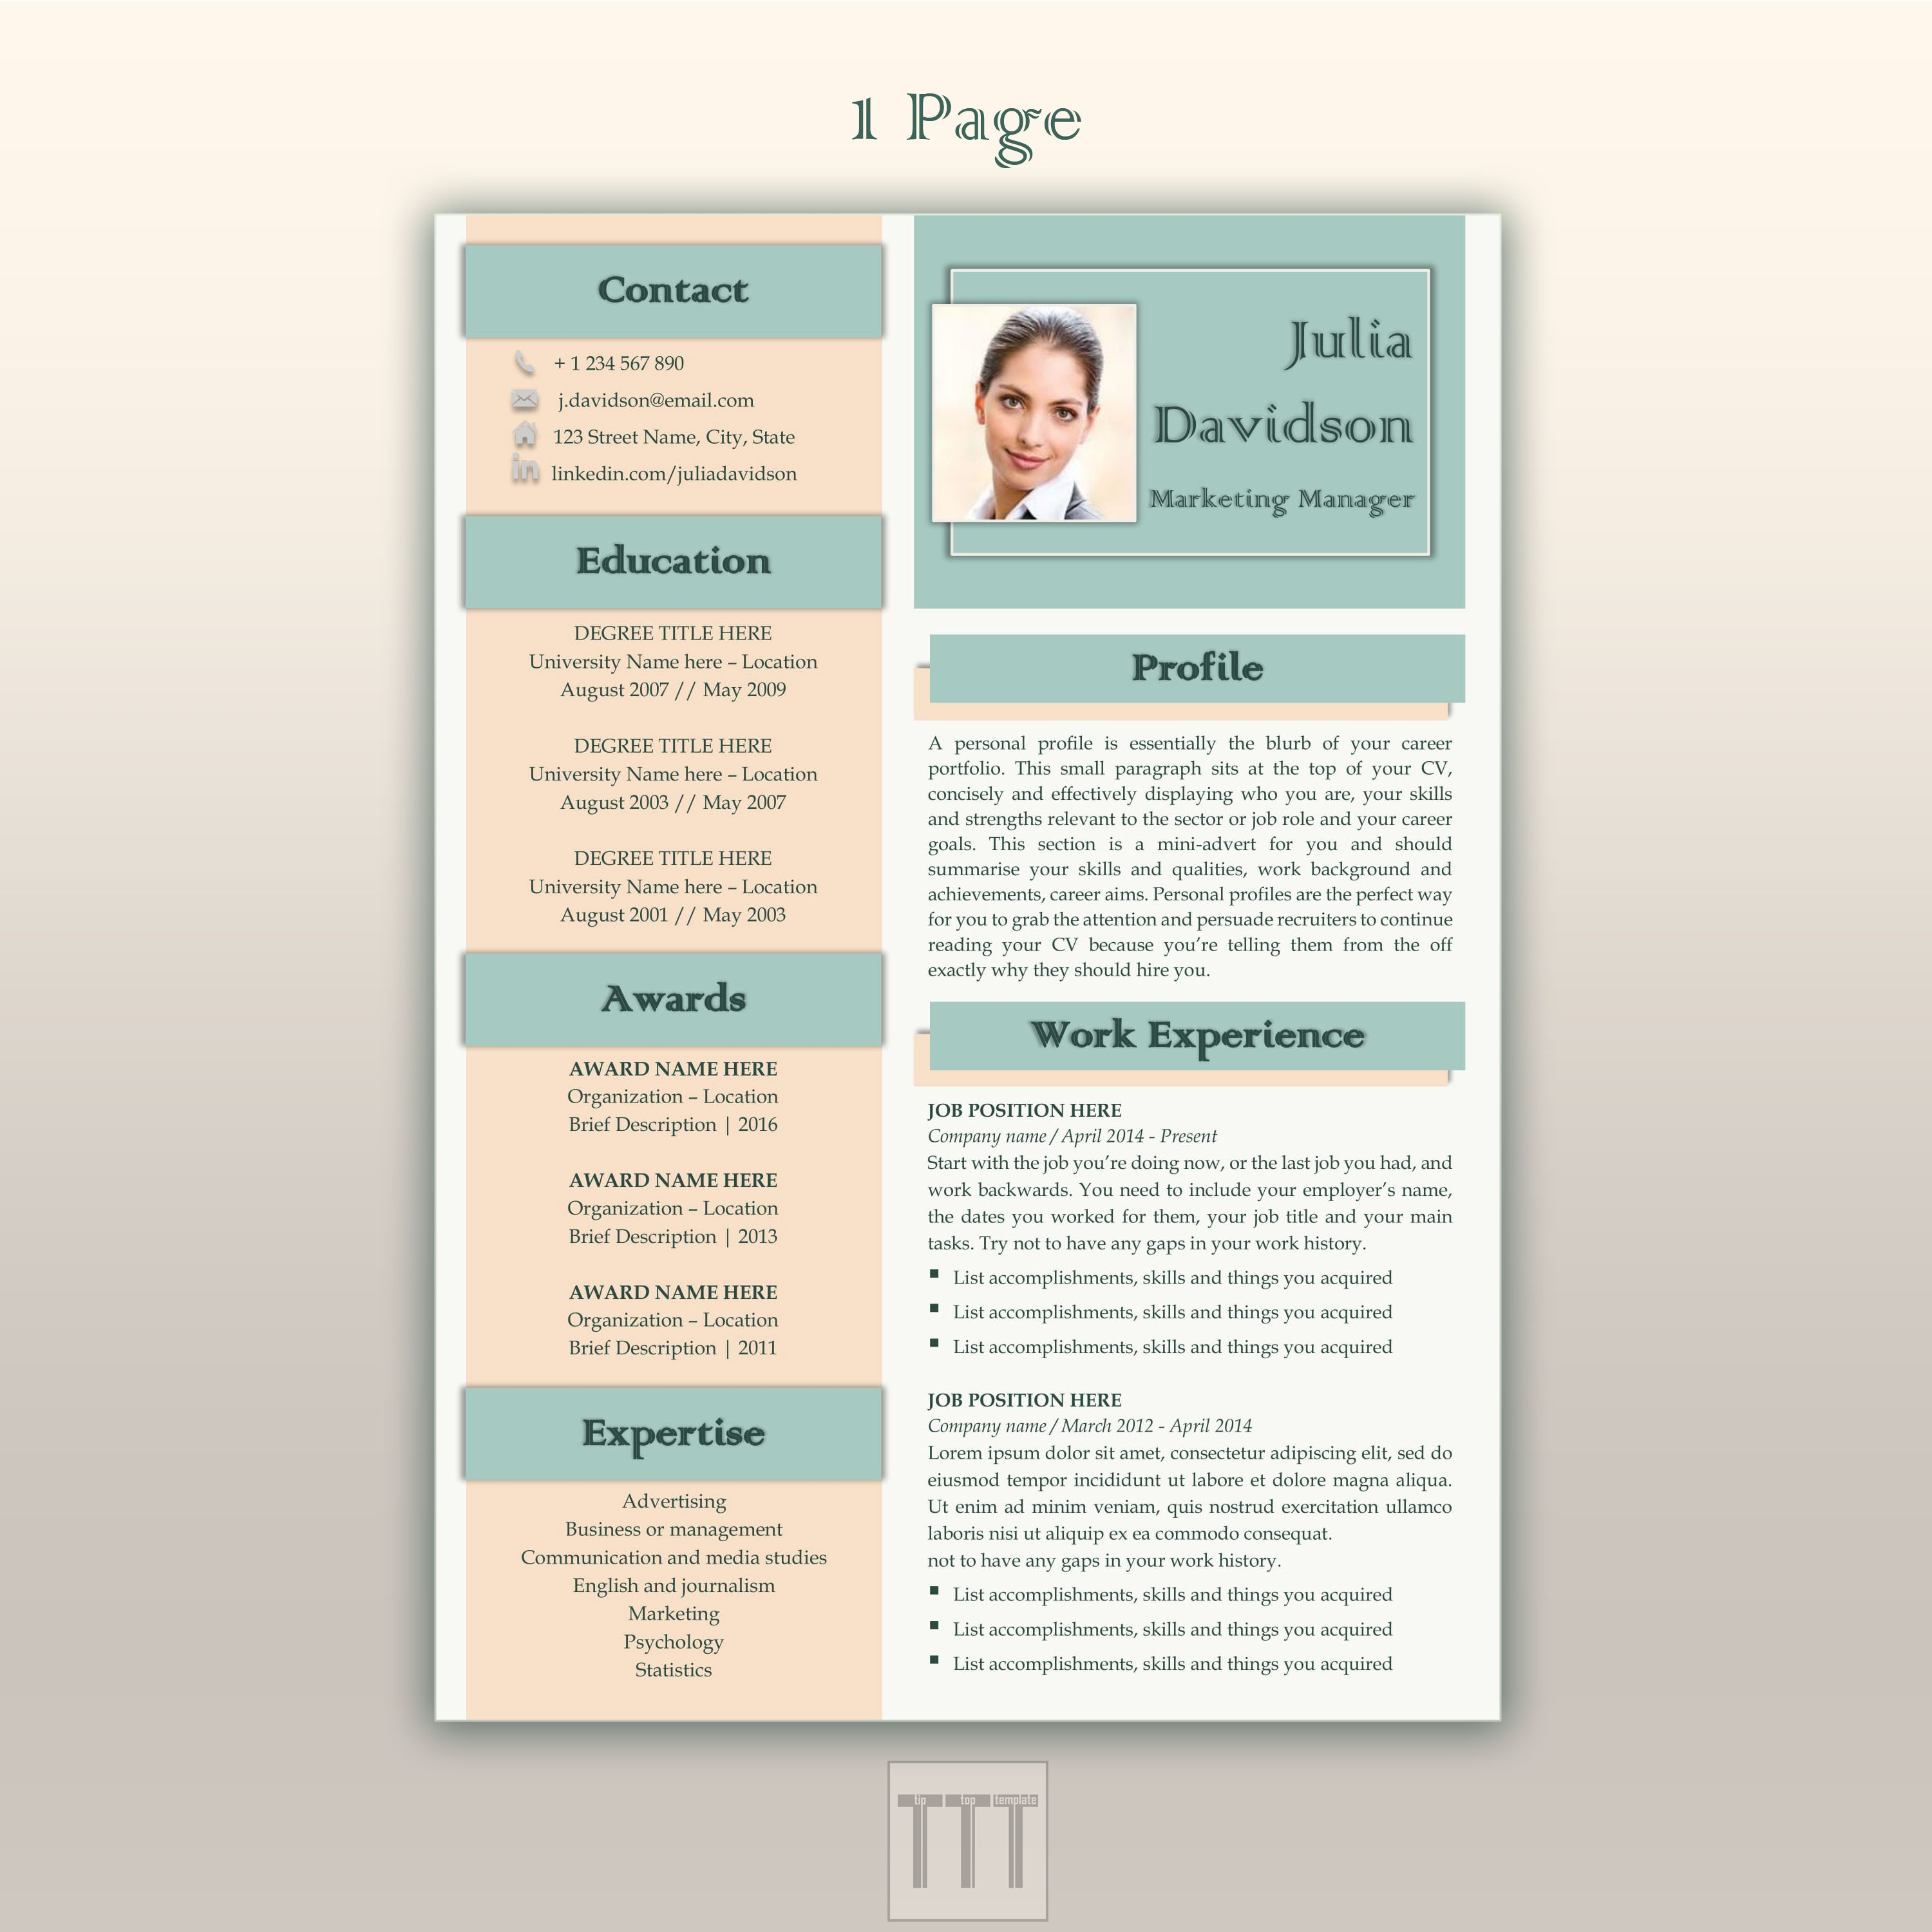 Microsoft Word Resume Template by TipTopTemplate